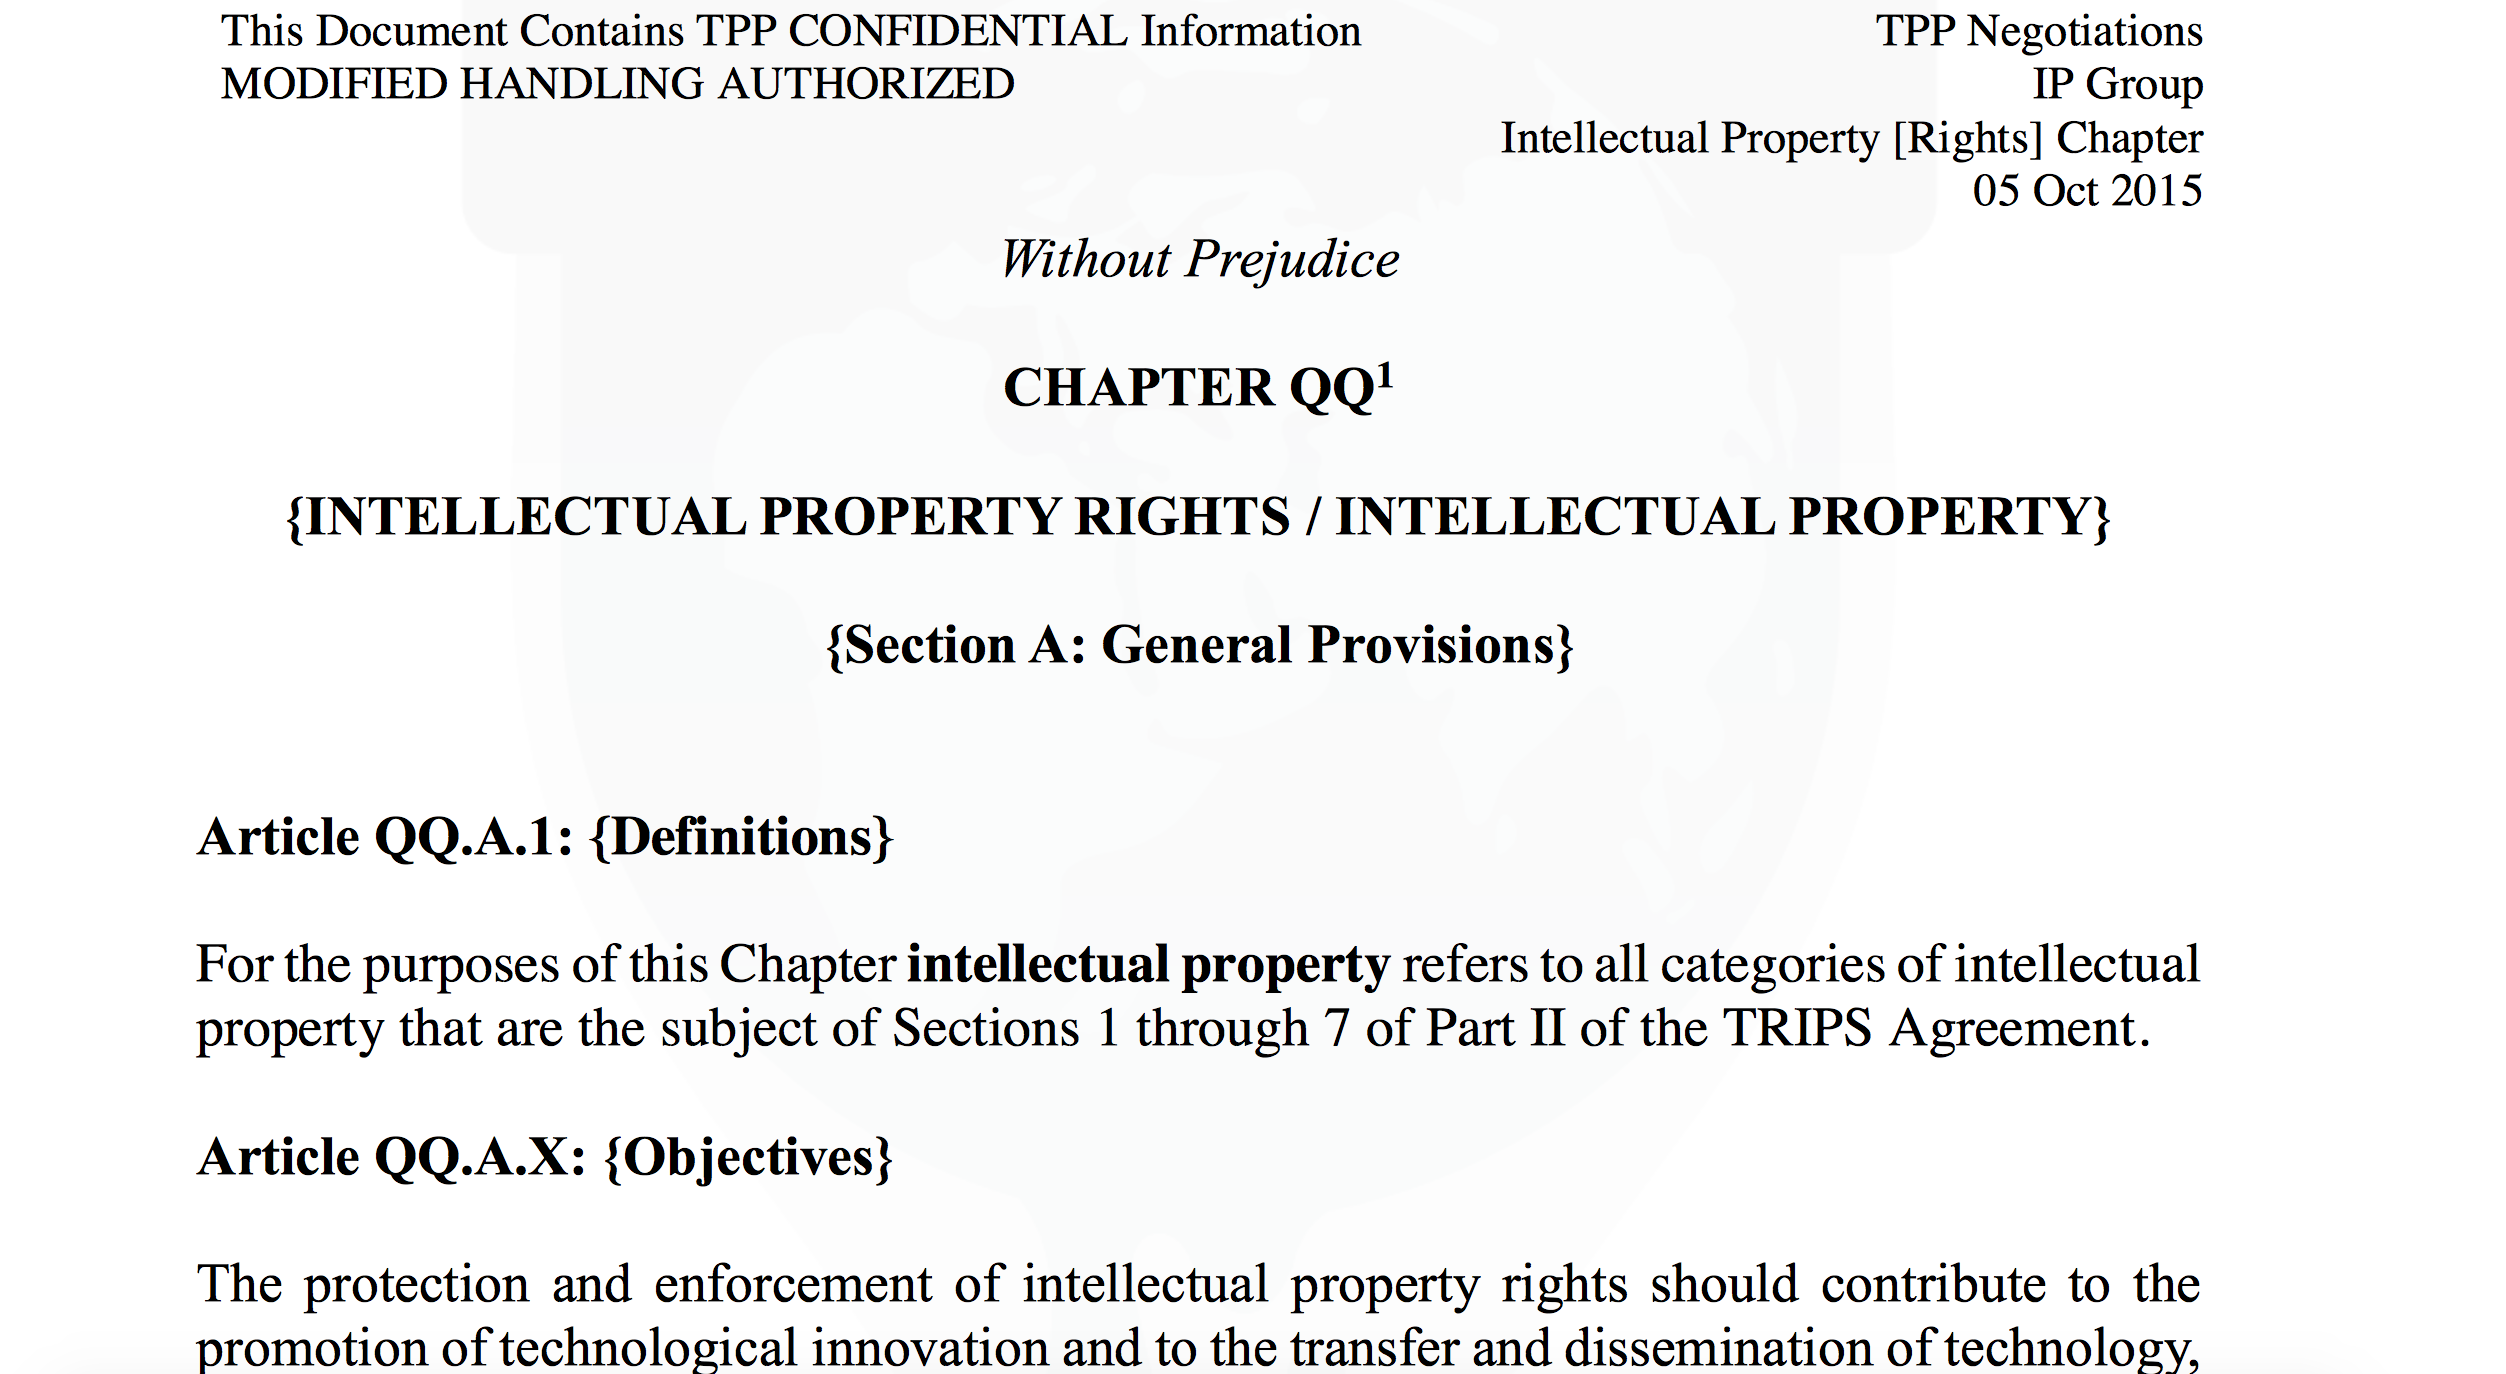 Secret Tpp Trade Agreement Leaked Full Text Of Intellectual